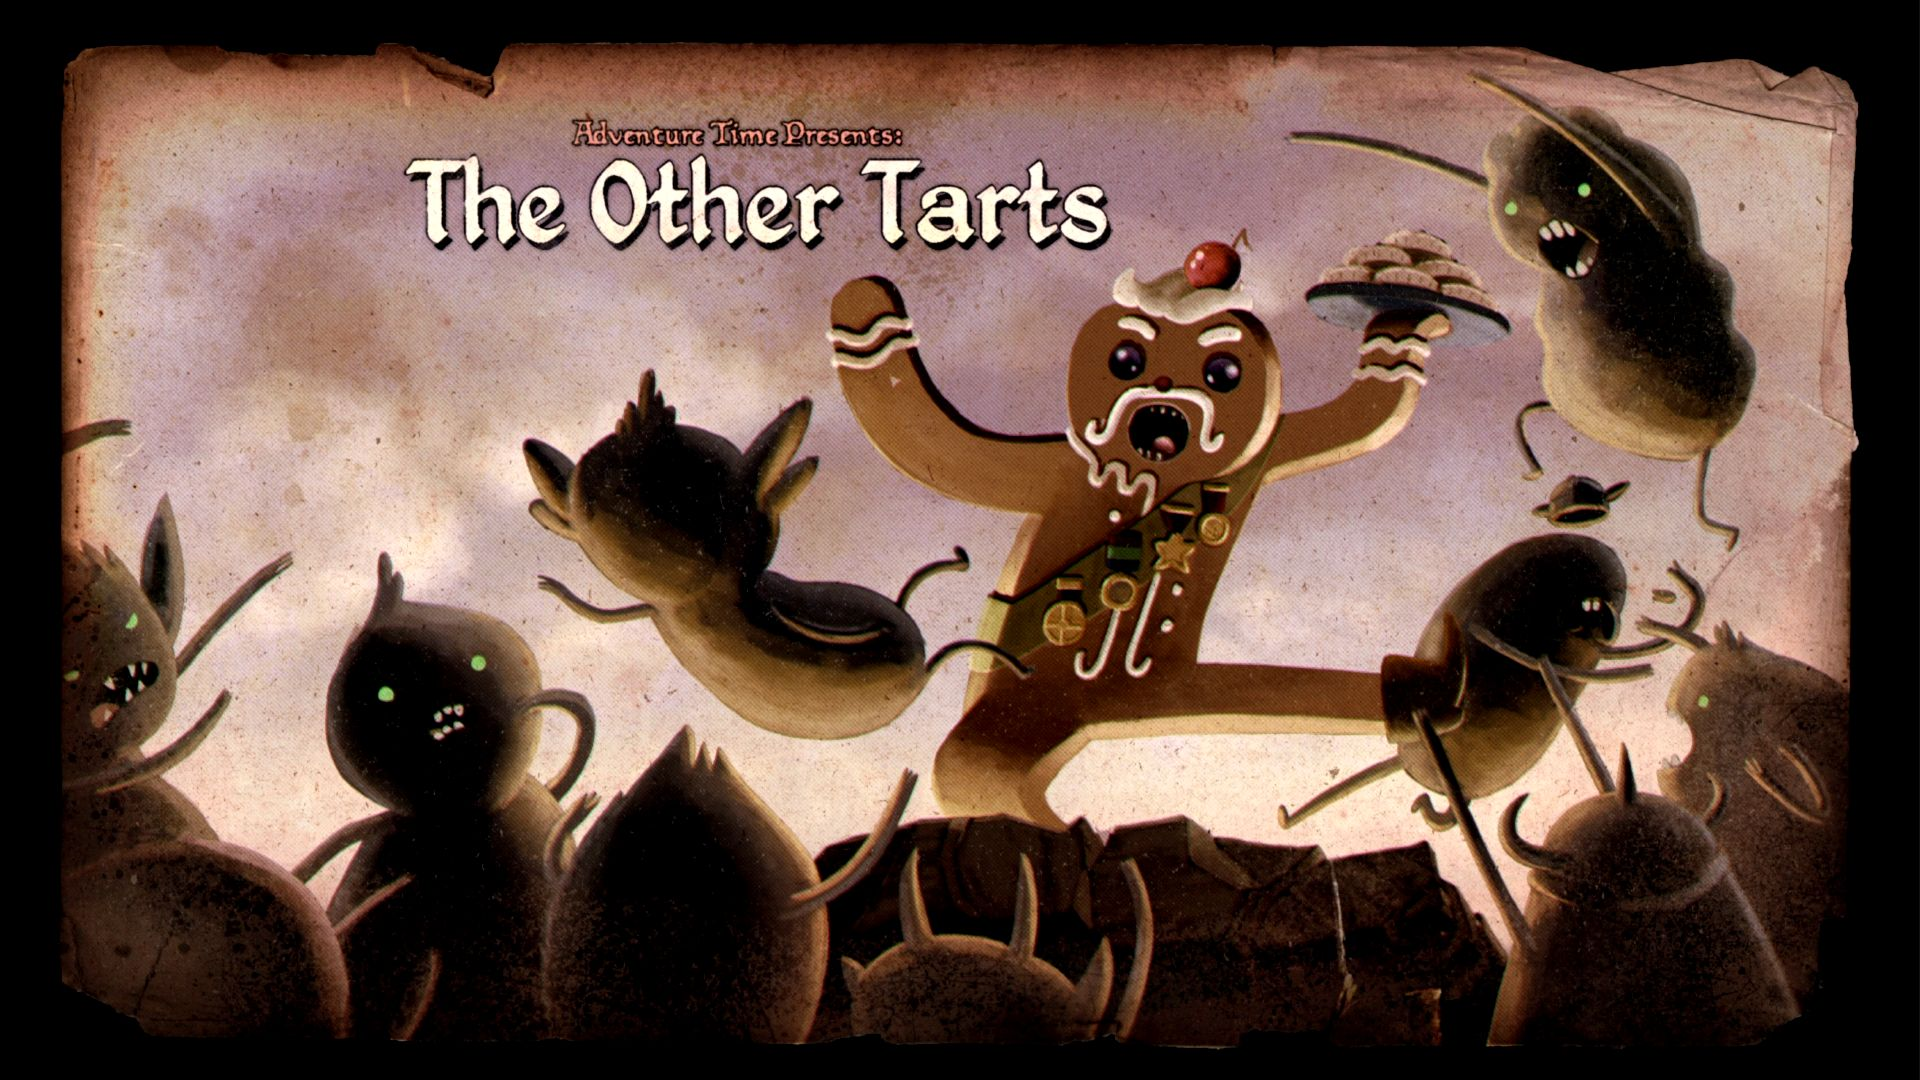 File:Titlecard S2E9 theothertarts.jpg